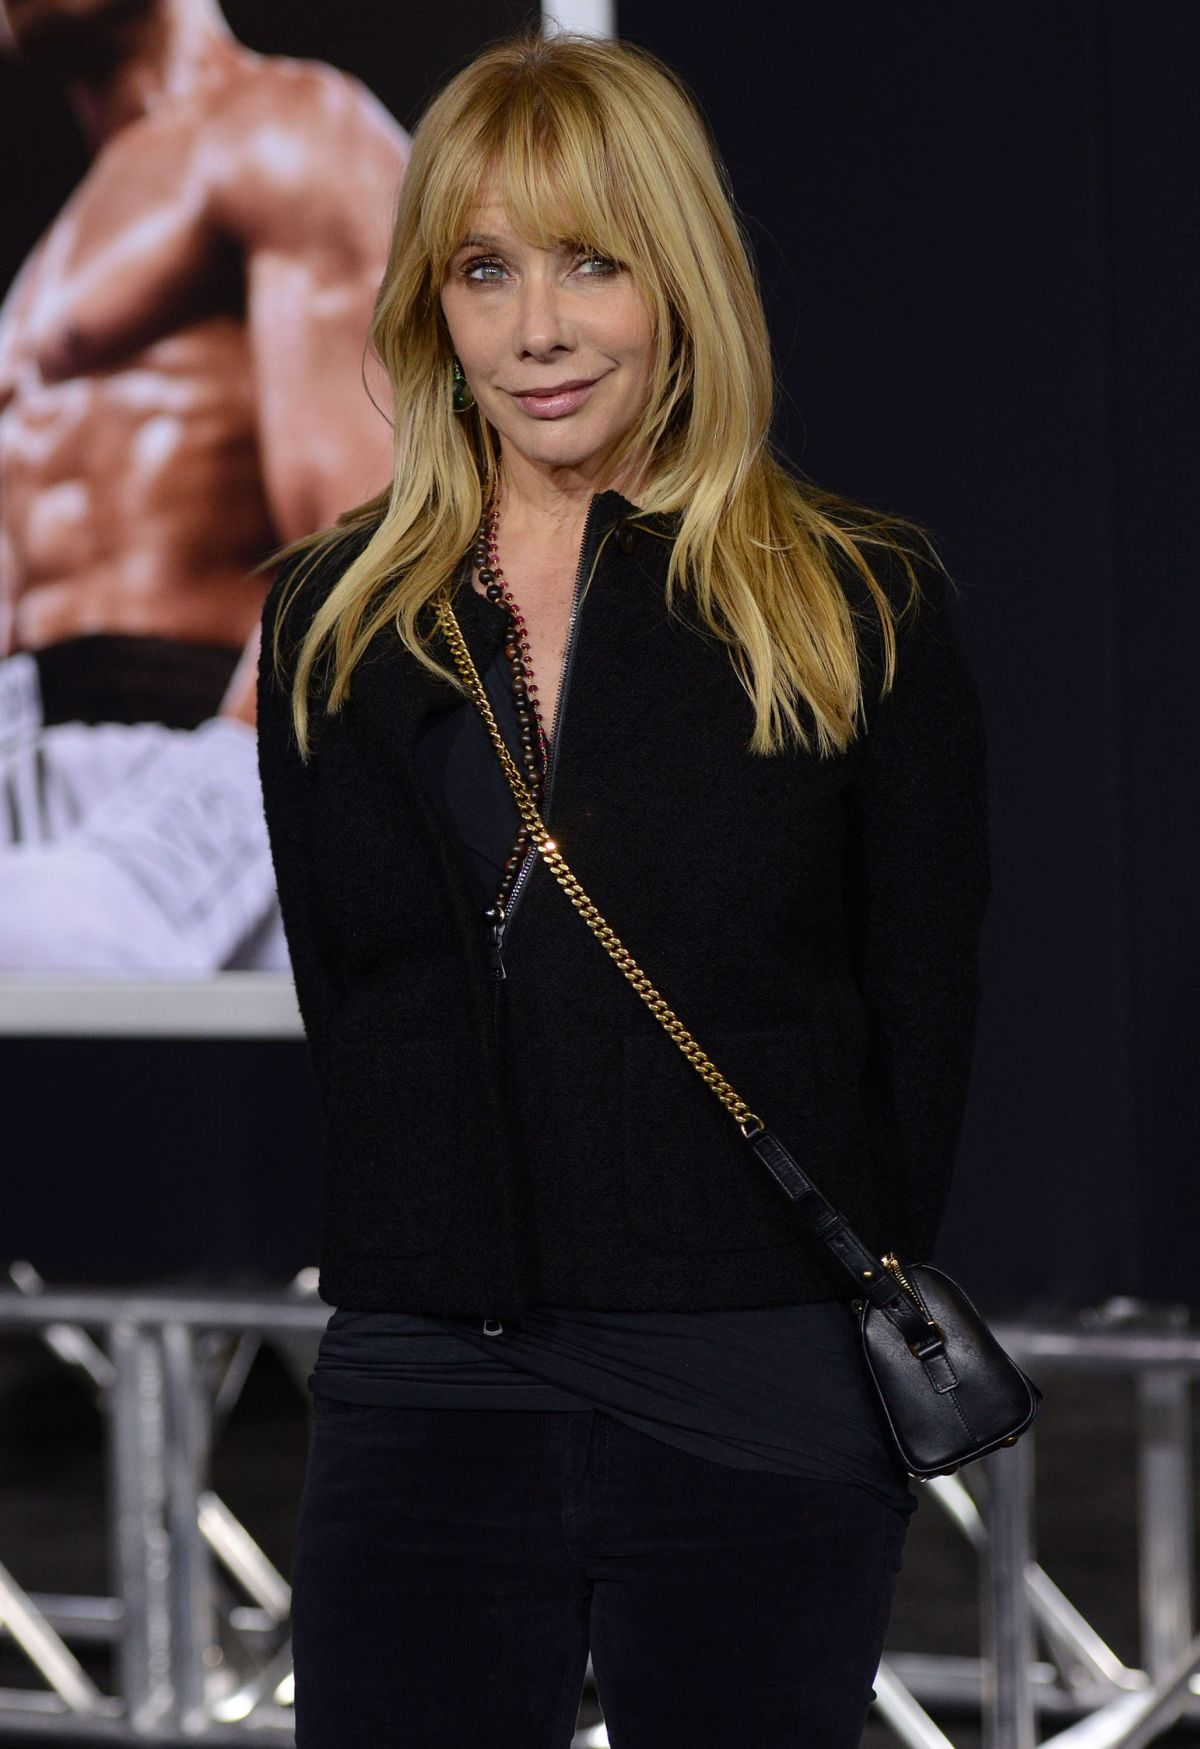 ROSANNA ARQUETTE at Creed Premiere in Westwood 11/19/2015